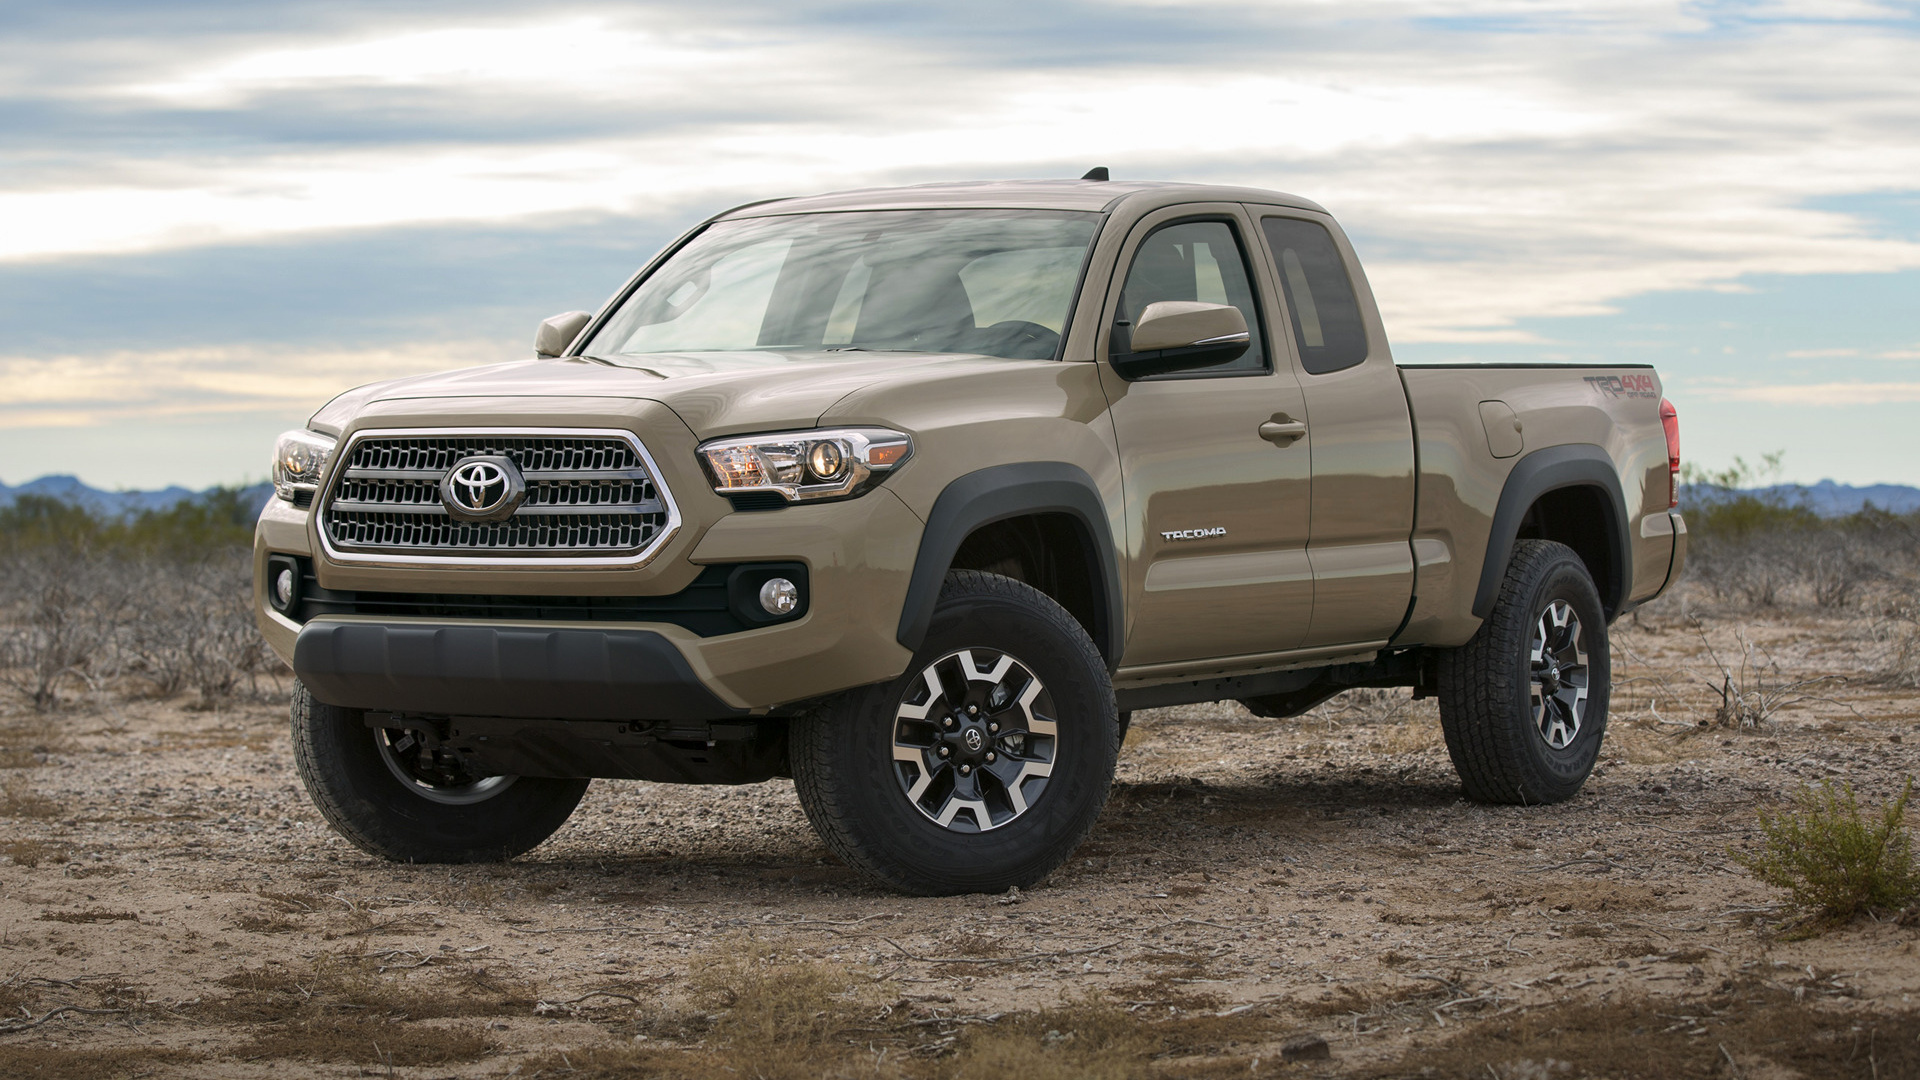 Toyota Tacoma TRD Off-Road Access Cab (2016) Wallpapers ...